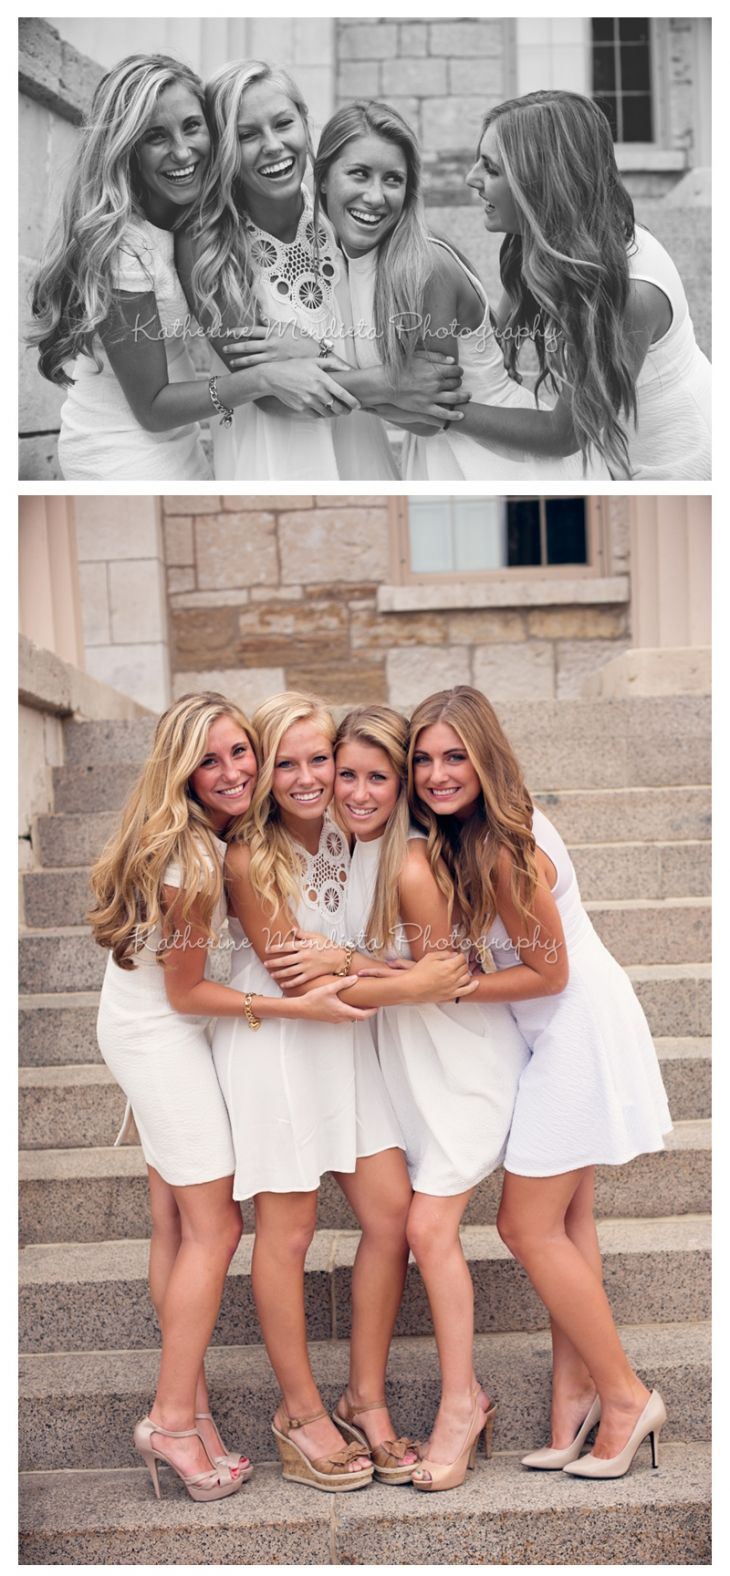 Chi Omega's in pretty white dresses and nude heels. Cute recruitment outfits! Laughter and Smiles. photo by Chi Omega alumna @Katherine Mendieta Photography #chiomega #chio #recruitment